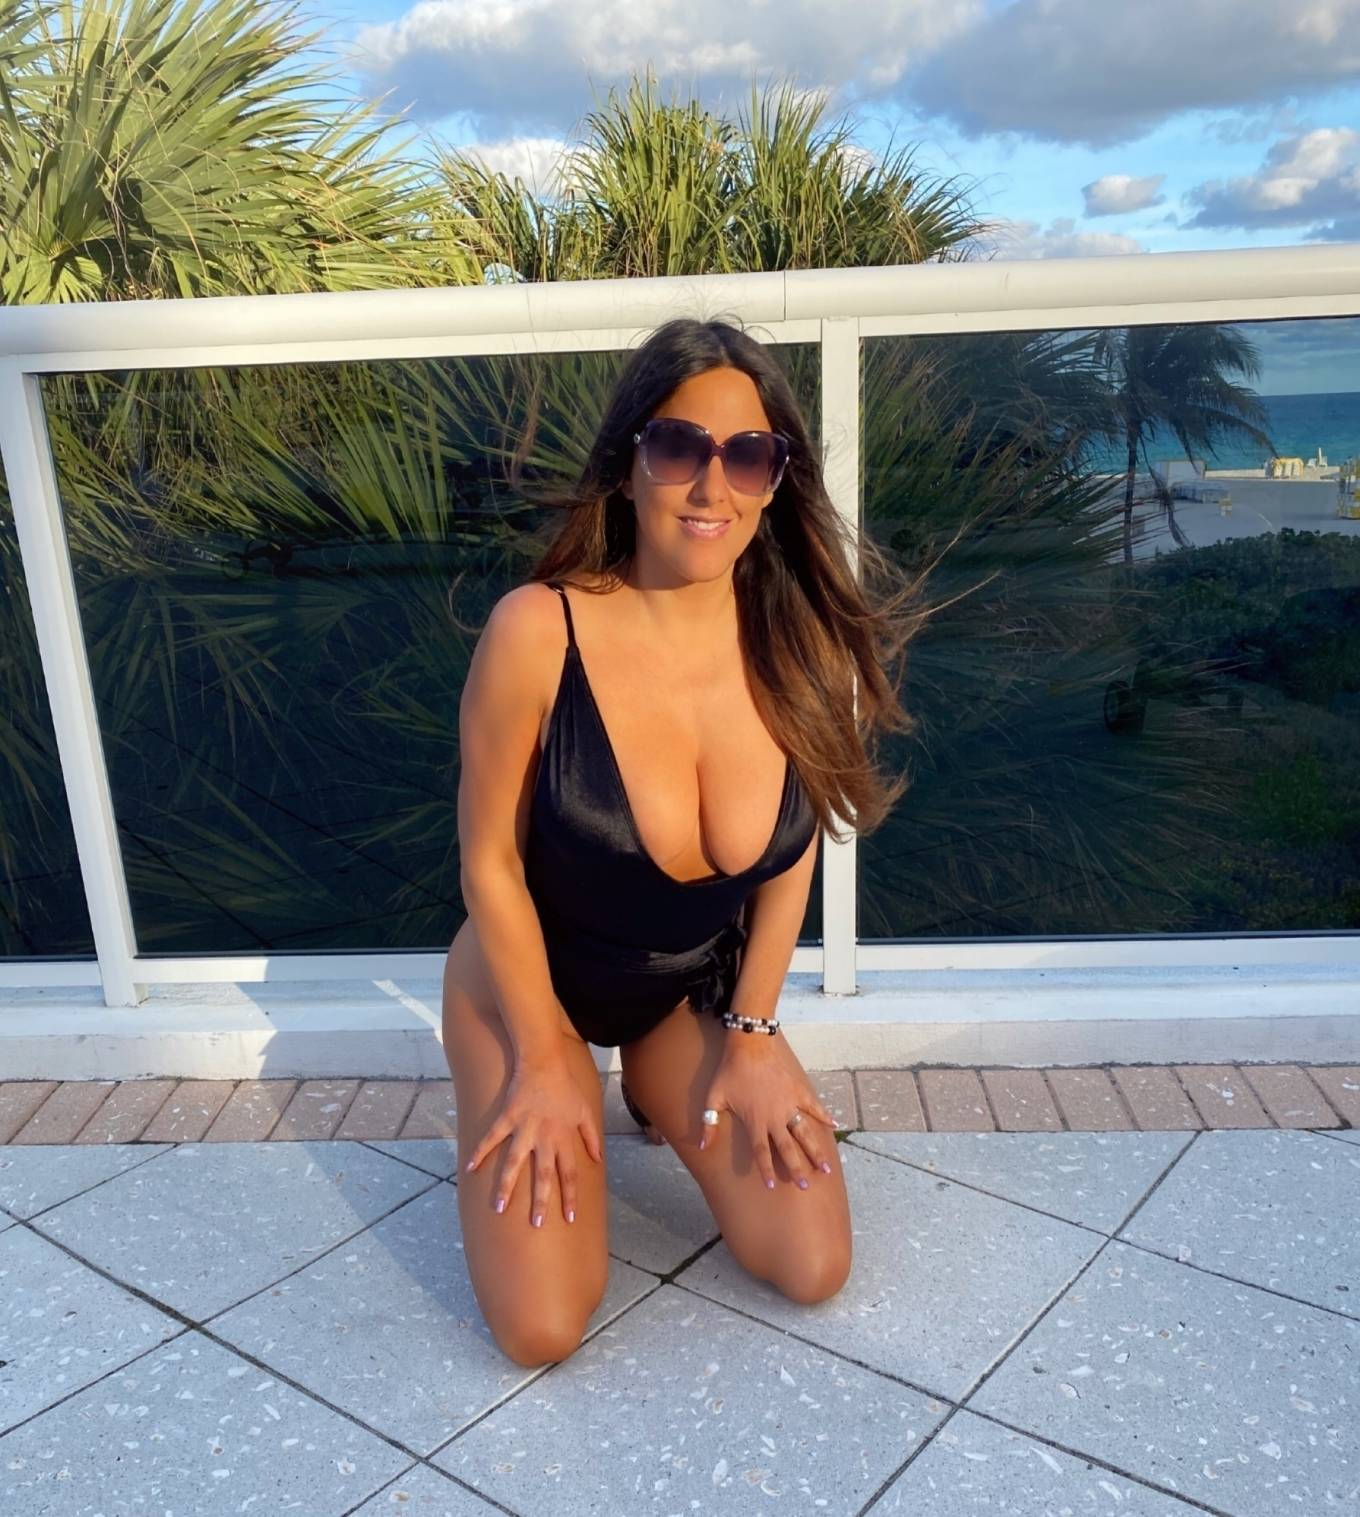 Claudia Romani - During photo shoot for PrettyLittleThing in Miami Beach